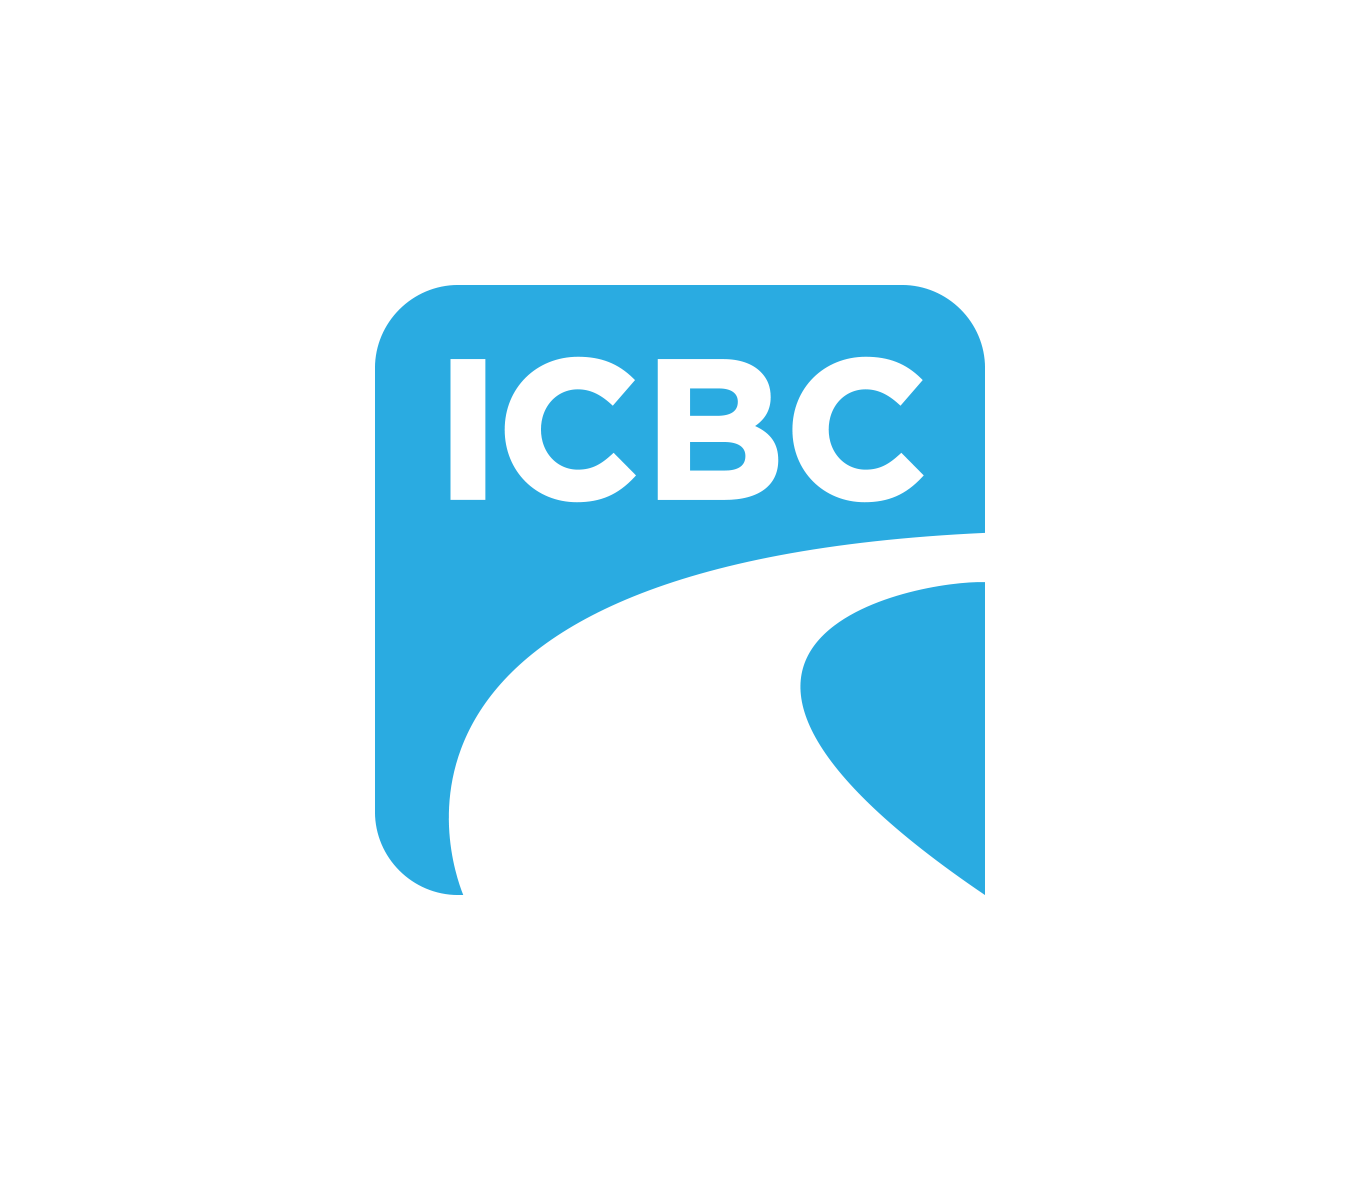 Insurance Corporation of British Columbia Customer Logo